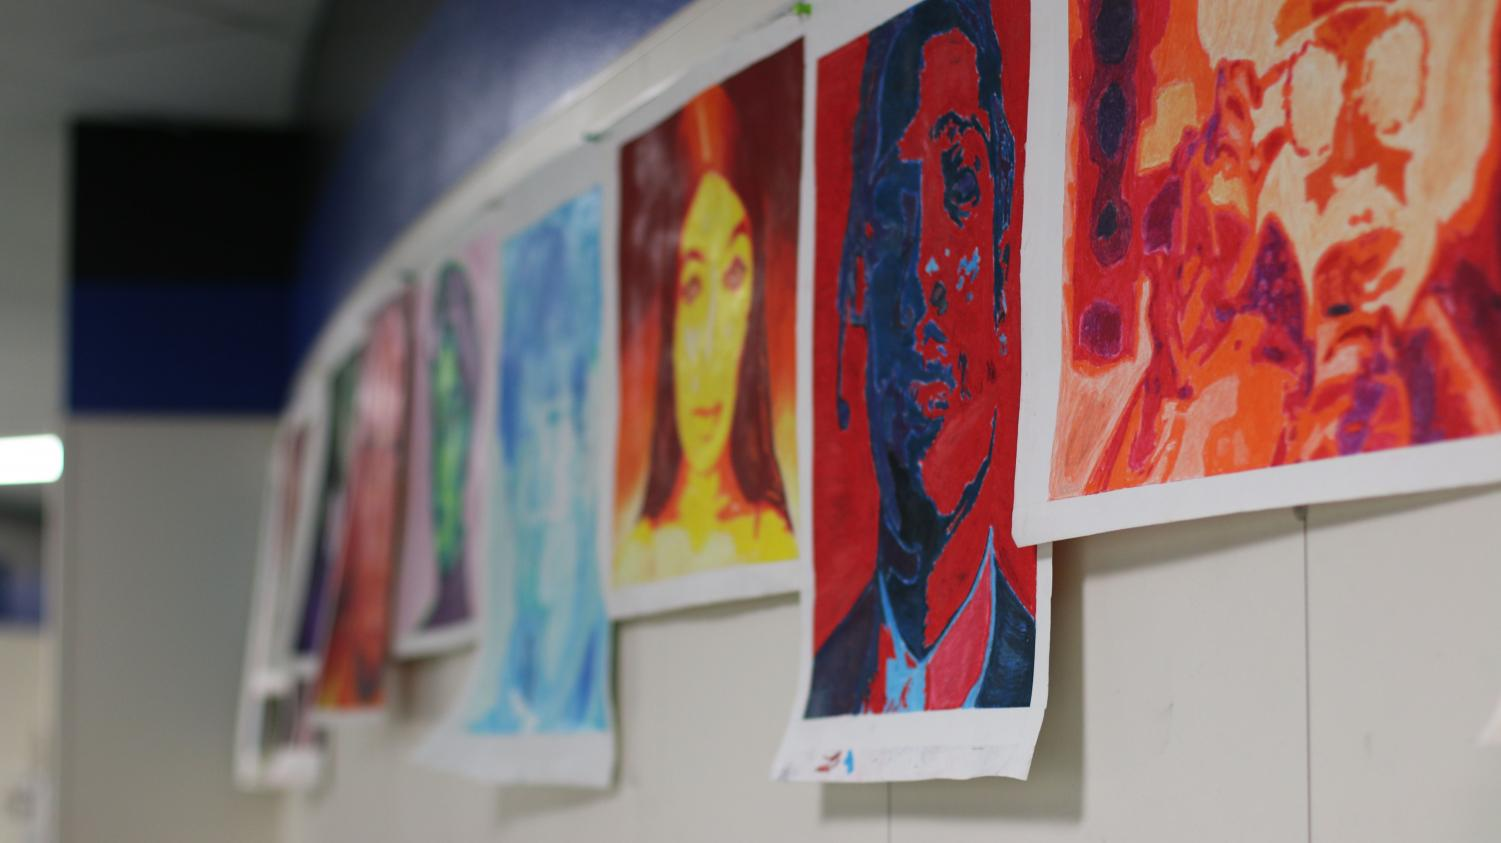 Art hangs on the walls. The art classes will present their pieces May 22.